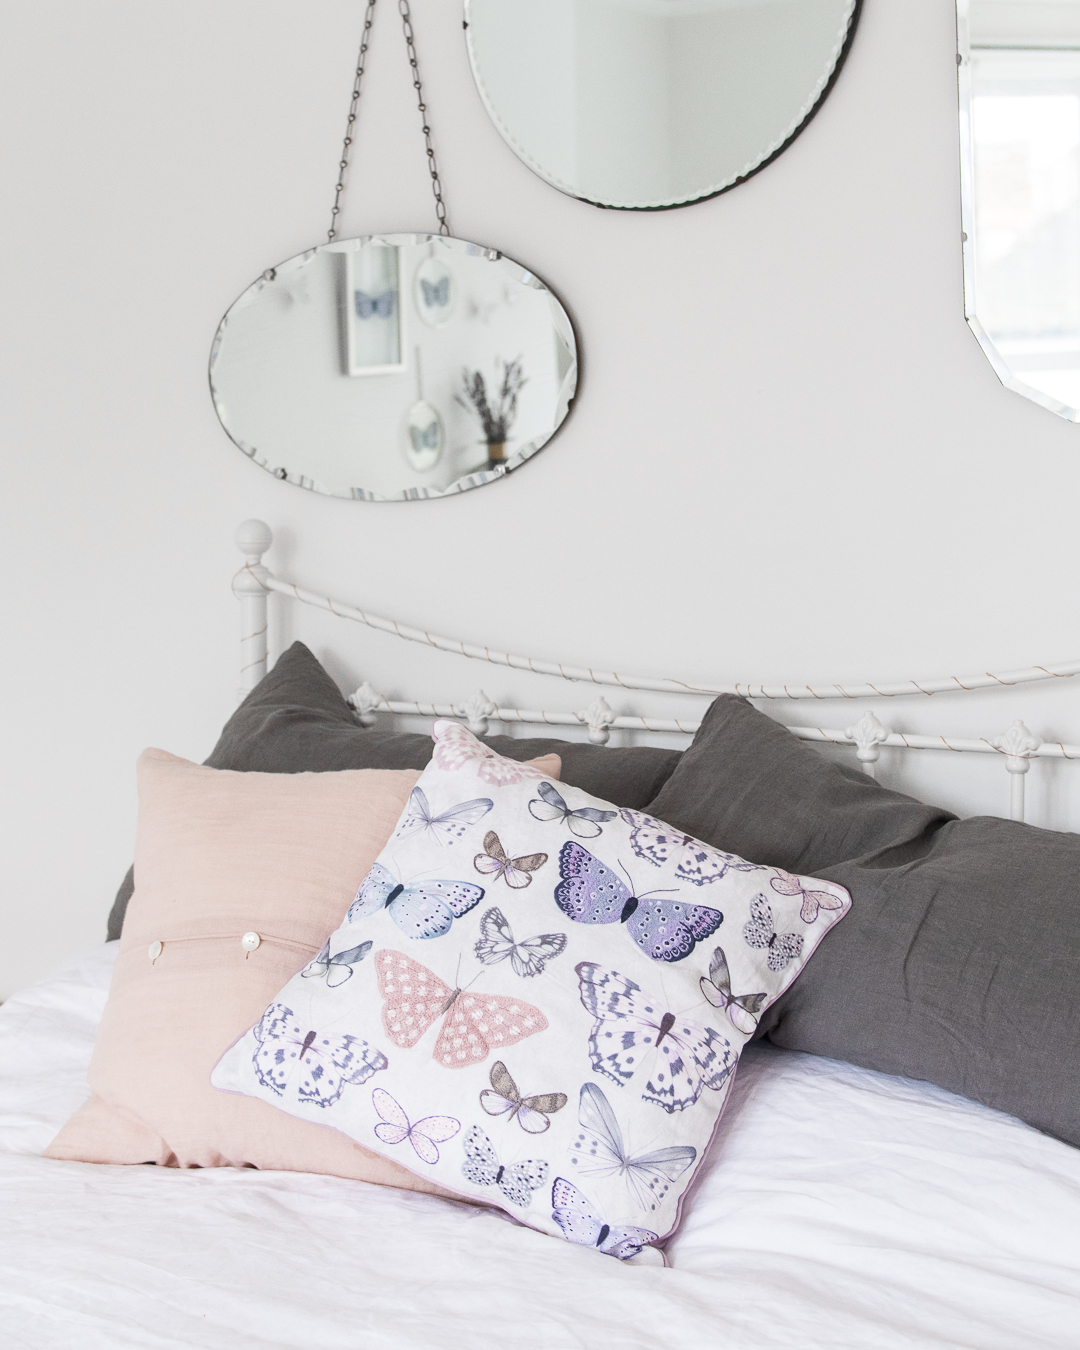 Luxury homewares with Tesco's fox and ivy